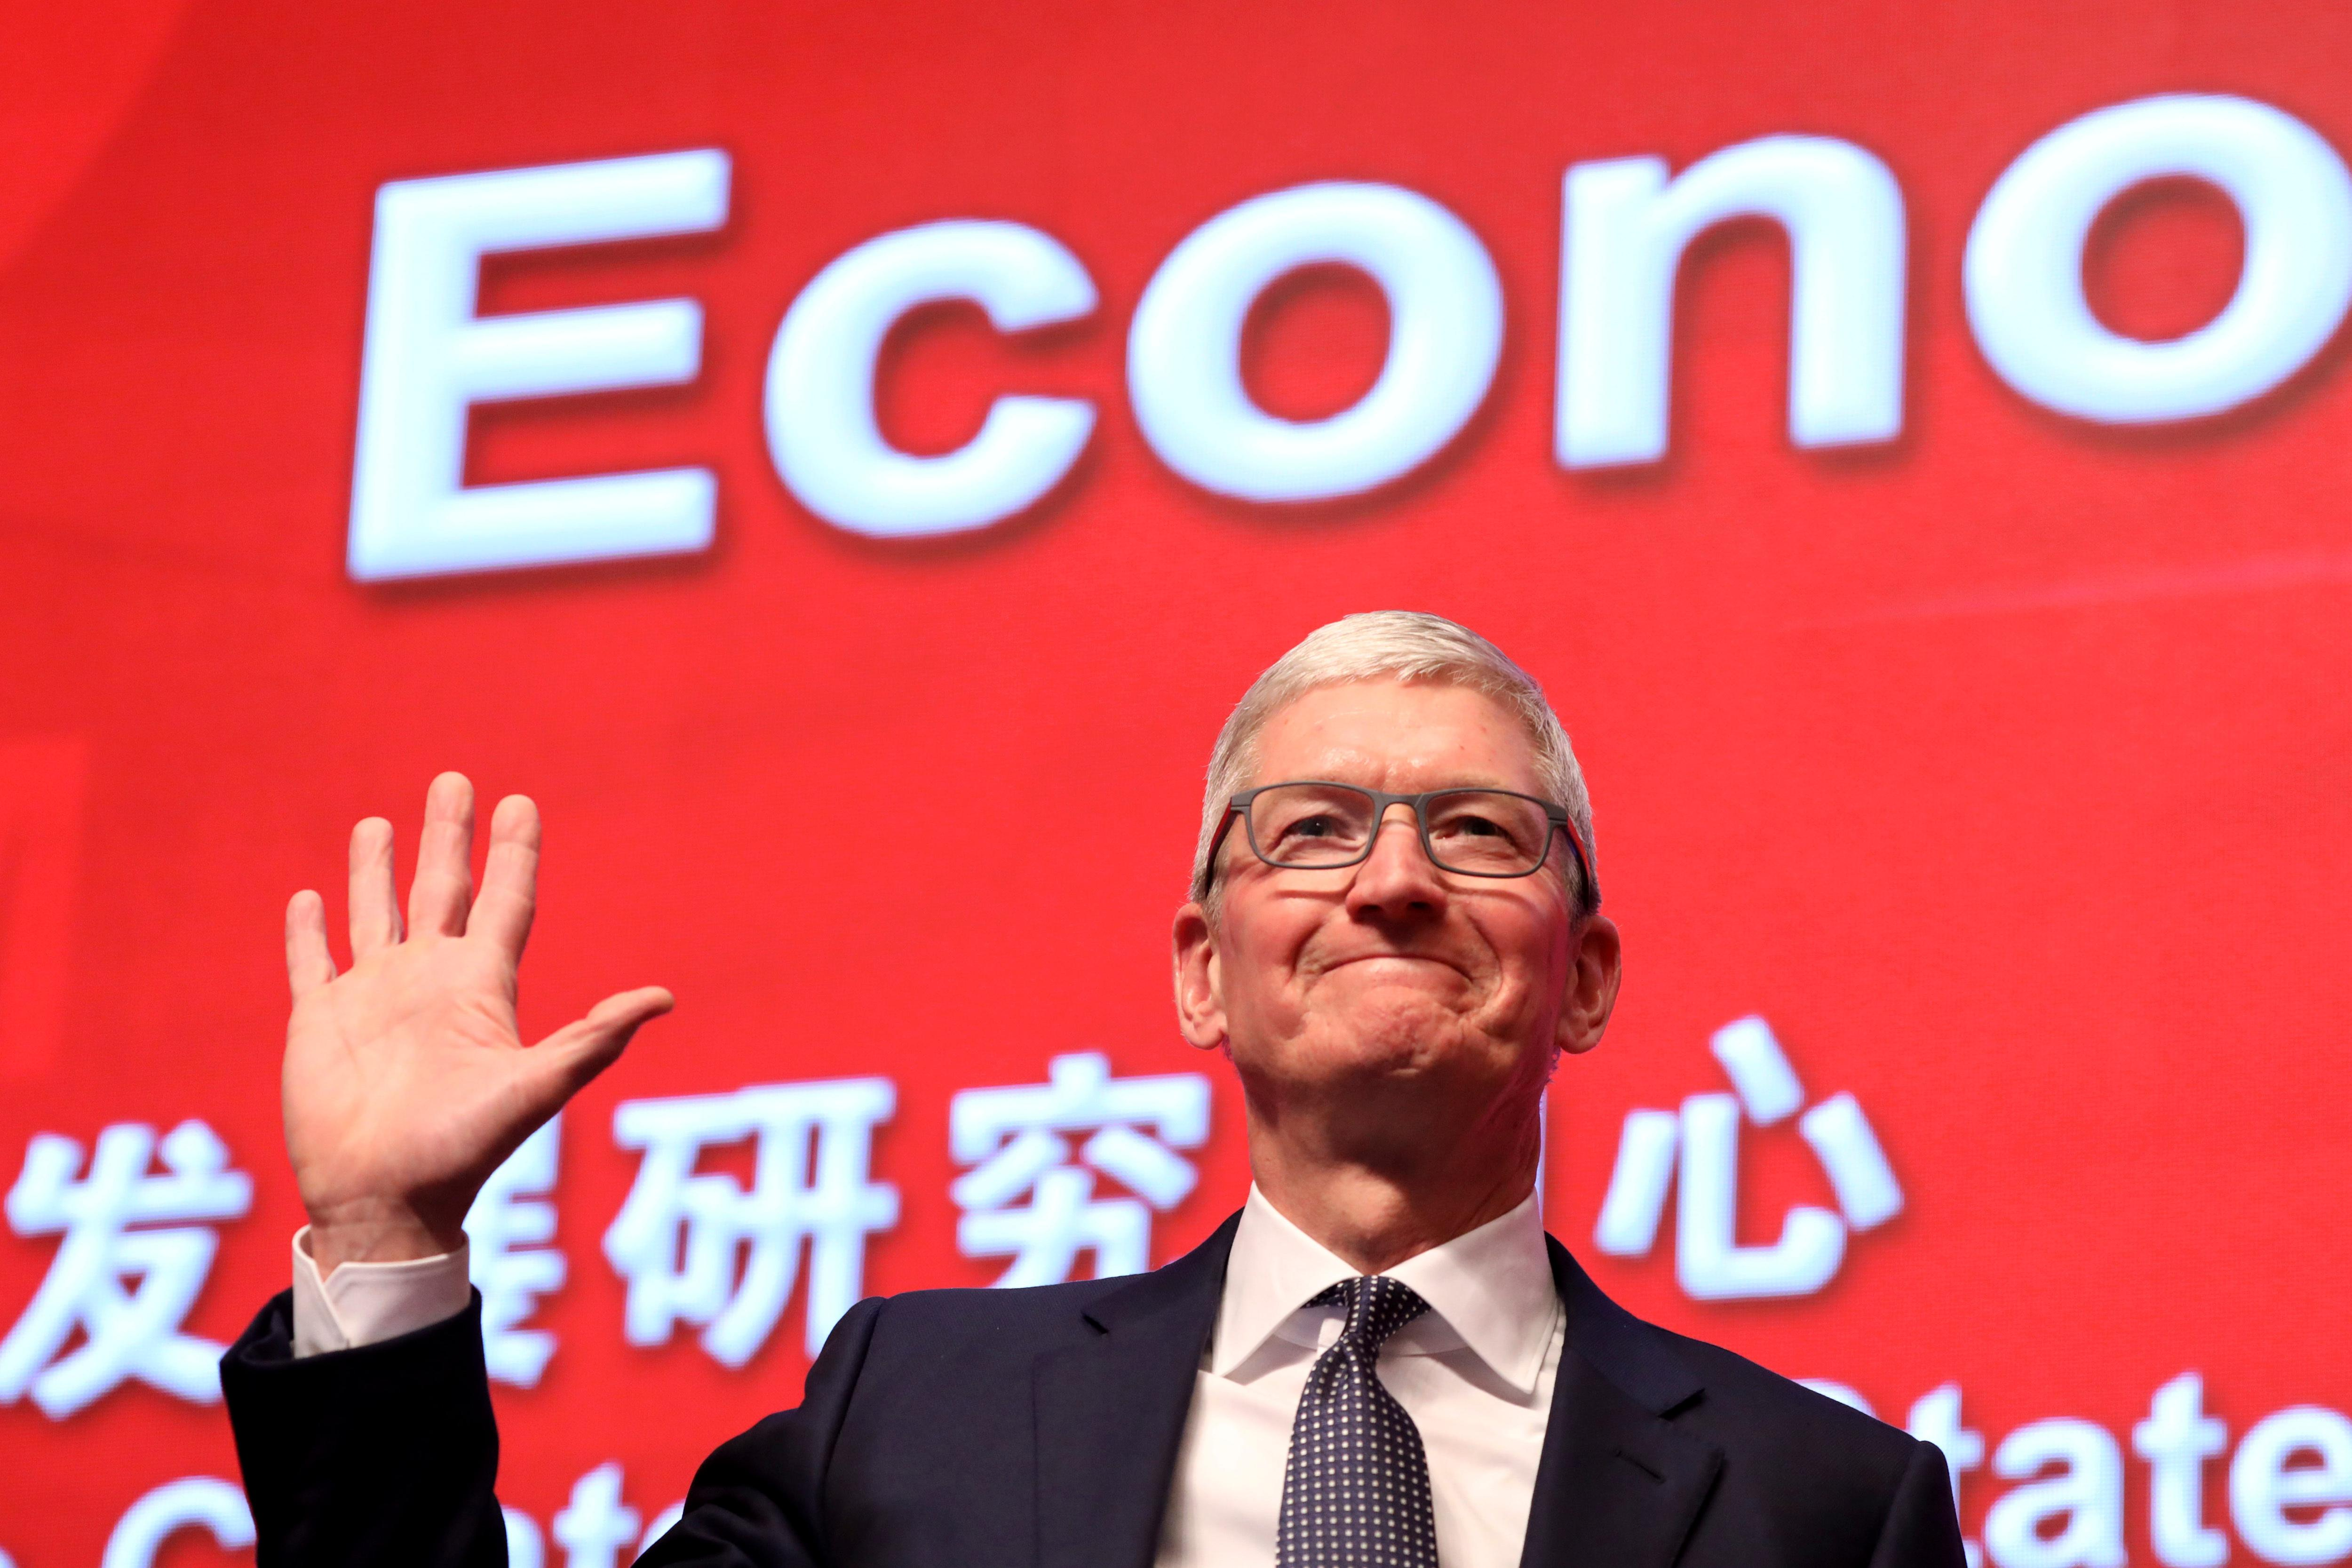 """Apple CEO Tim Cook waves as he arrives for the Economic Summit held for the China Development Forum in Beijing, China, Saturday, March 23, 2019. Cook says he's """"extremely bullish"""" about the global economy based on the amount of innovation being carried out, and he's urging China to continue to """"open up."""" (AP Photo/Ng Han Guan)"""